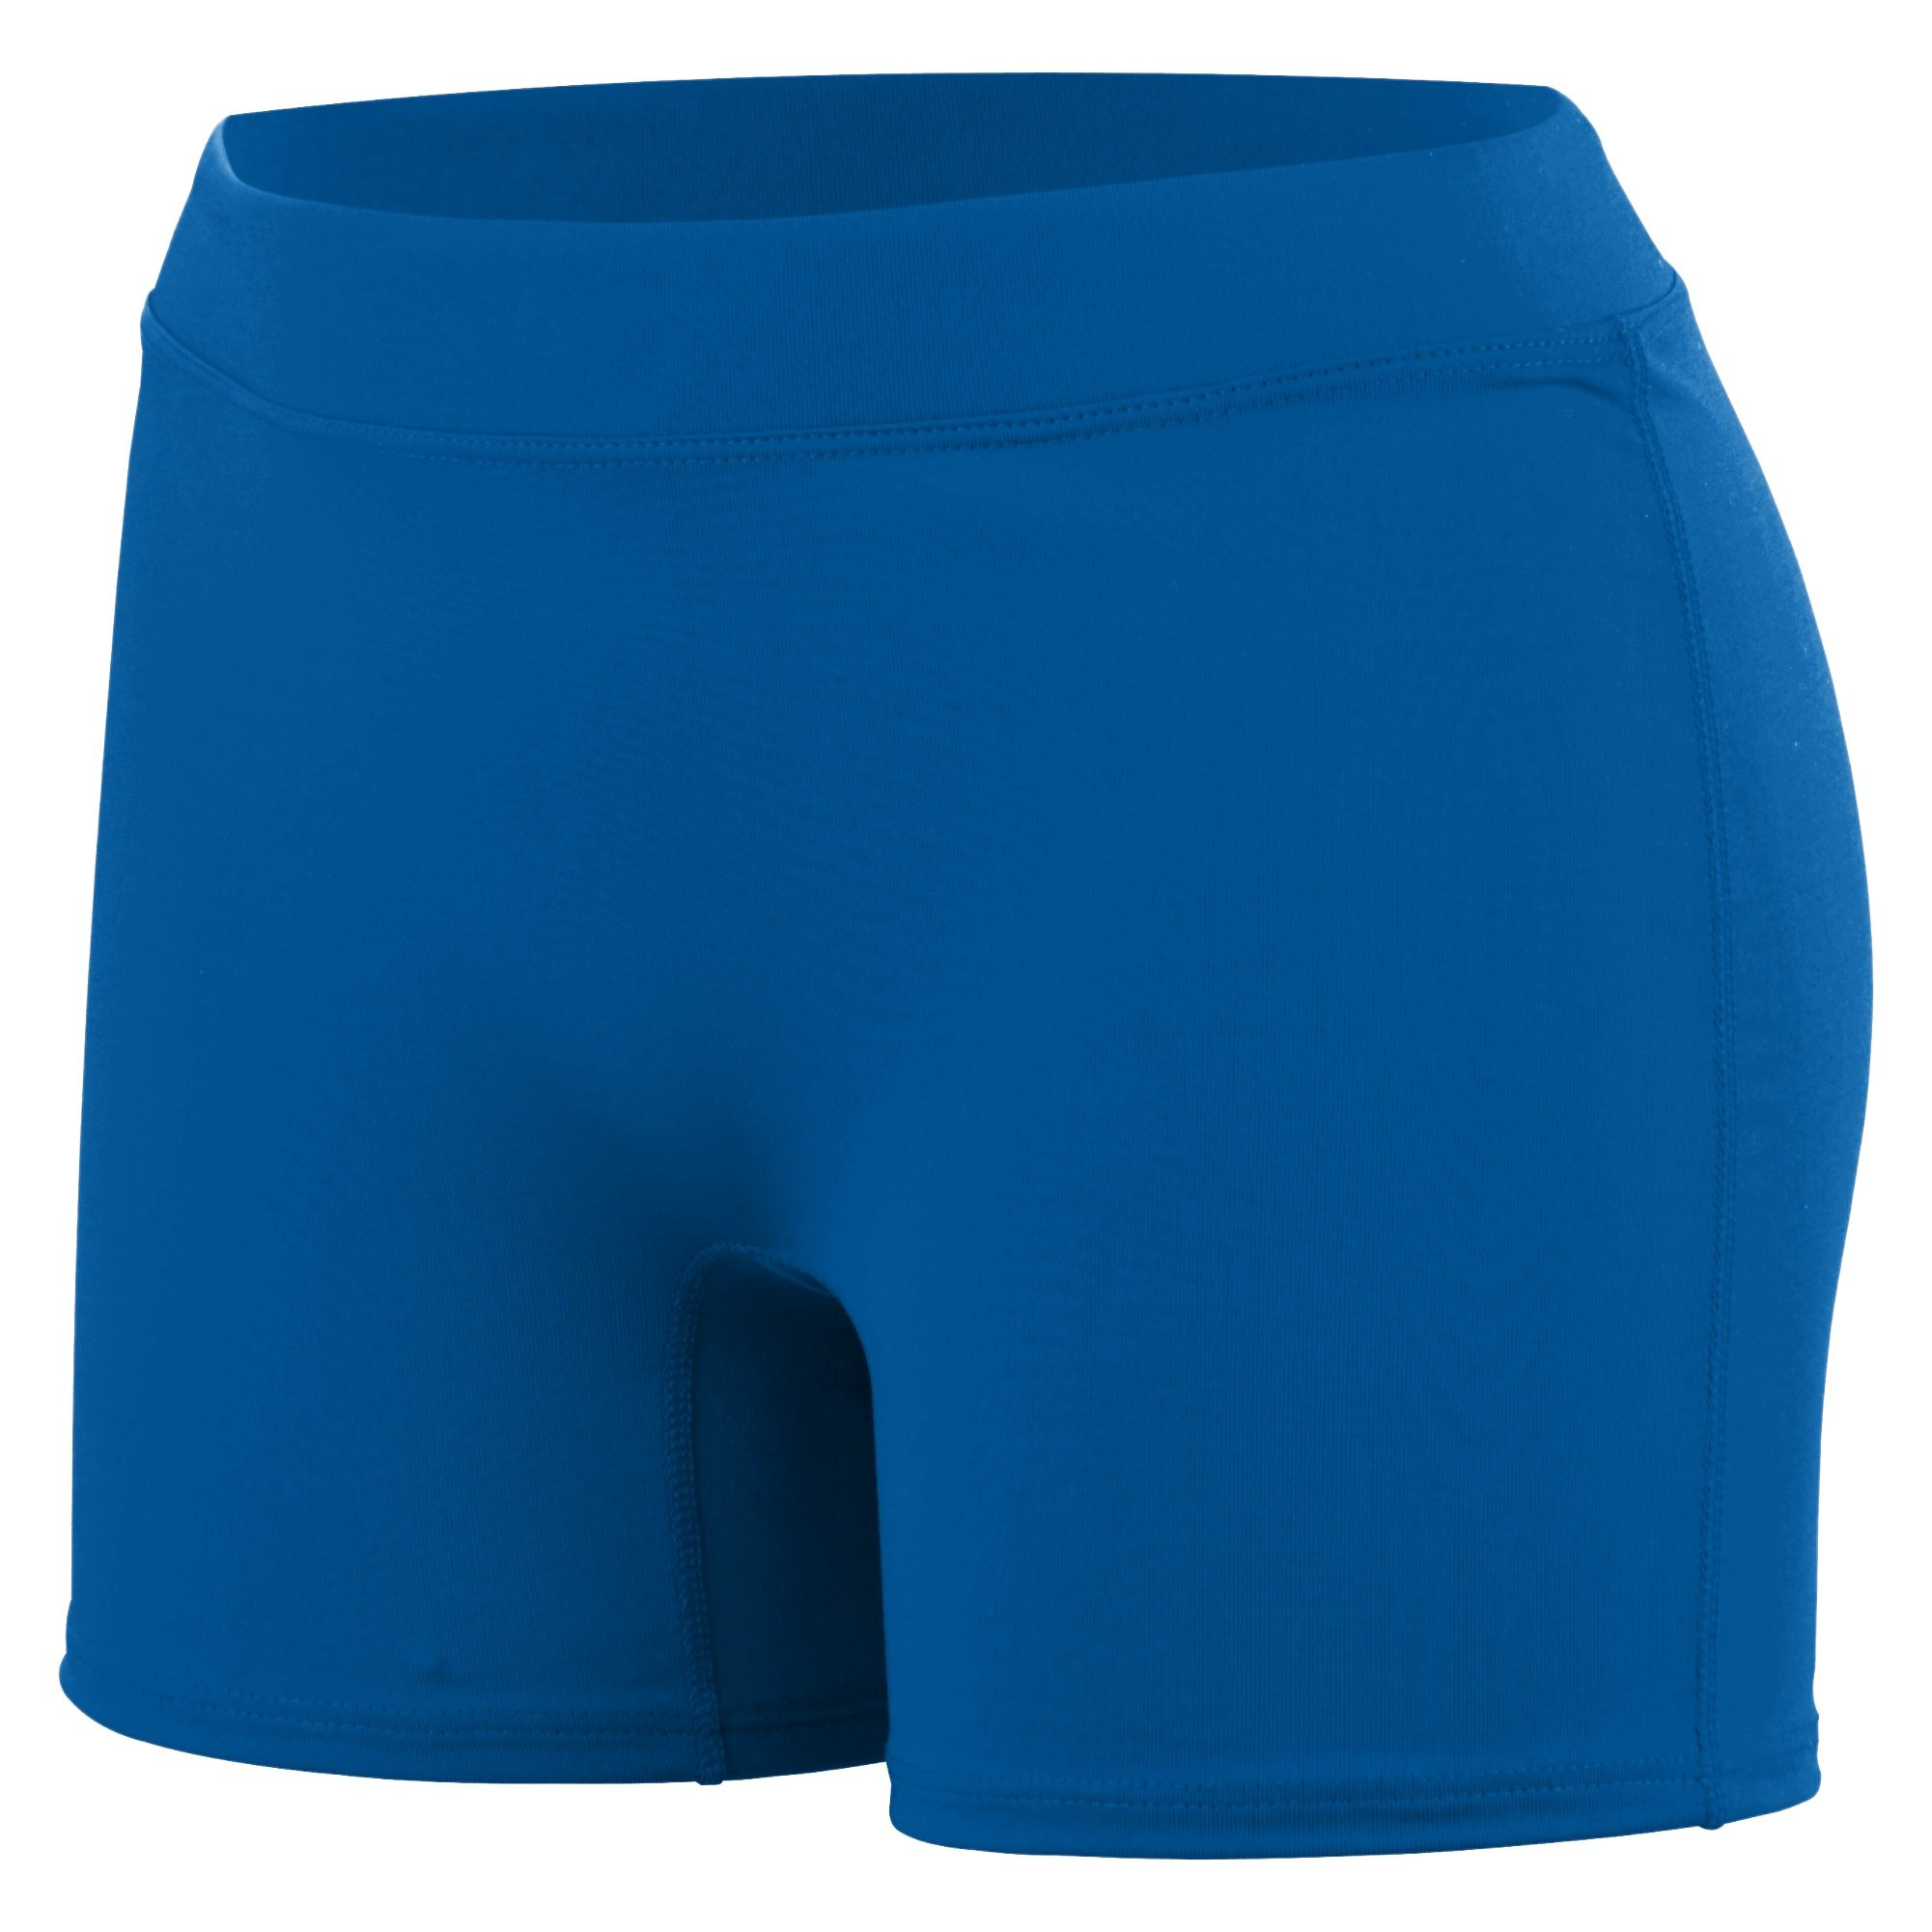 Augusta Sportswear Women's Enthuse Volleyball Shorts, Royal, Small